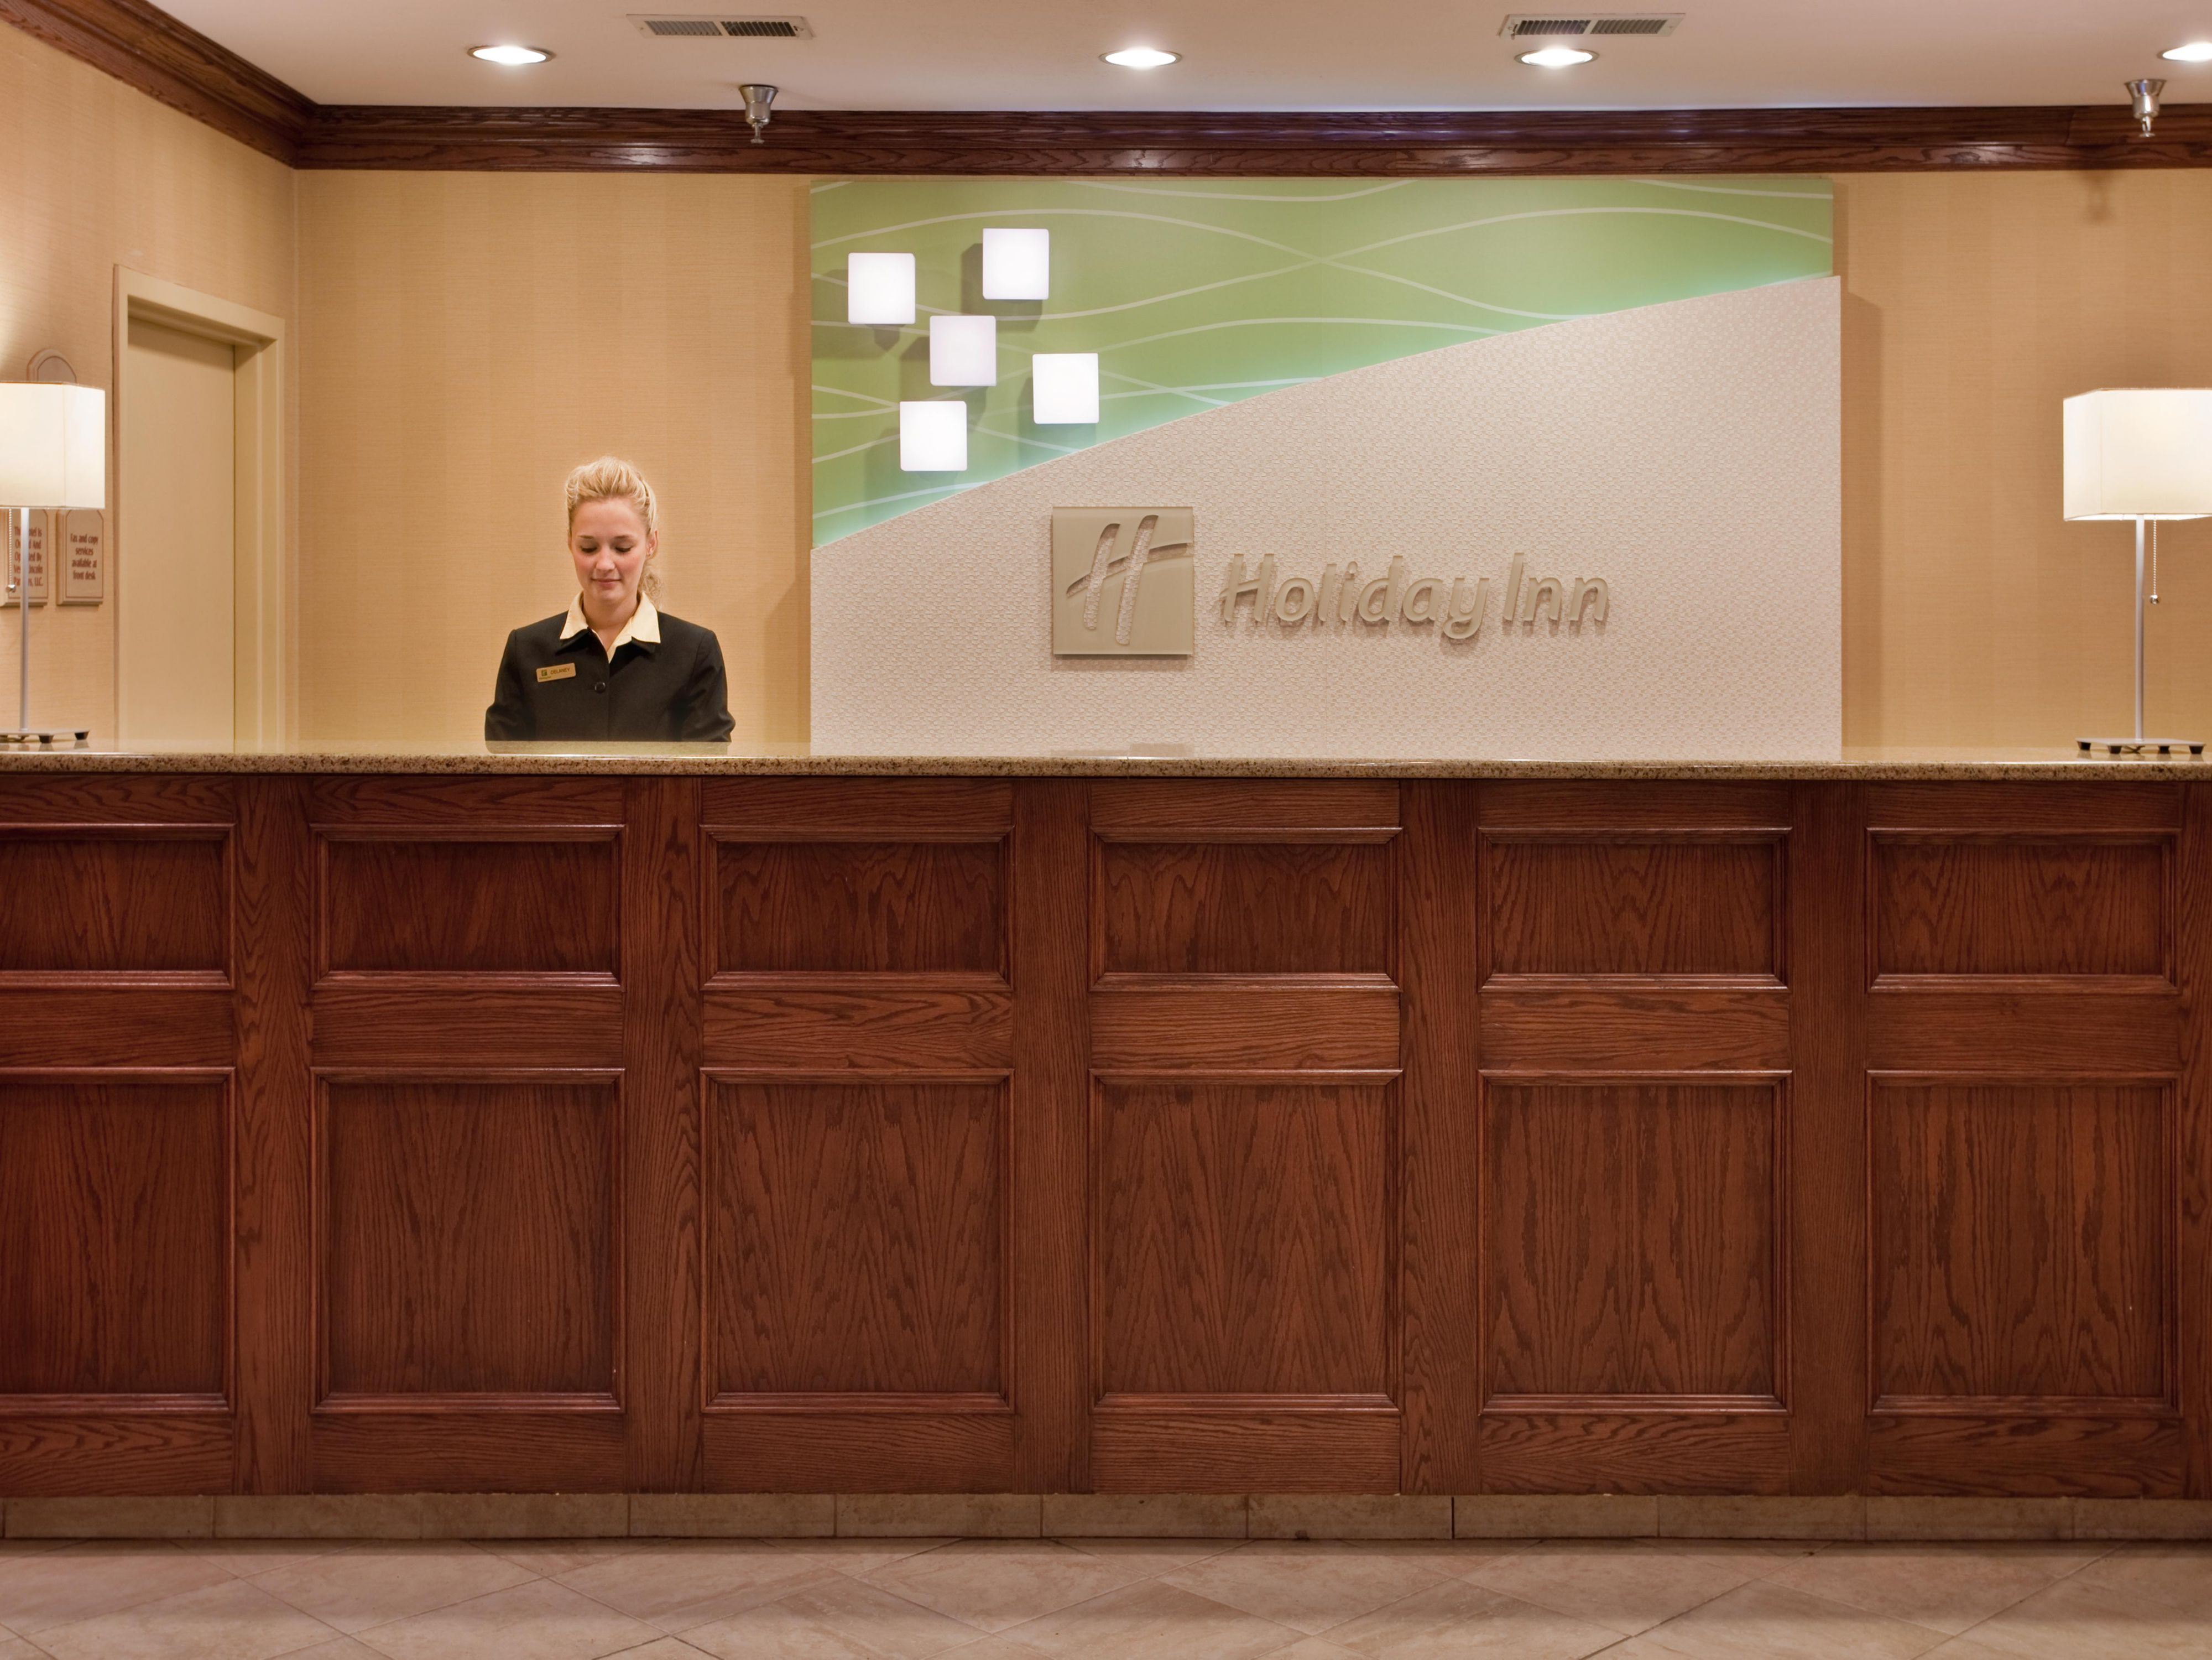 Friendly check in at the Holiday Inn Lincoln, NE hotel